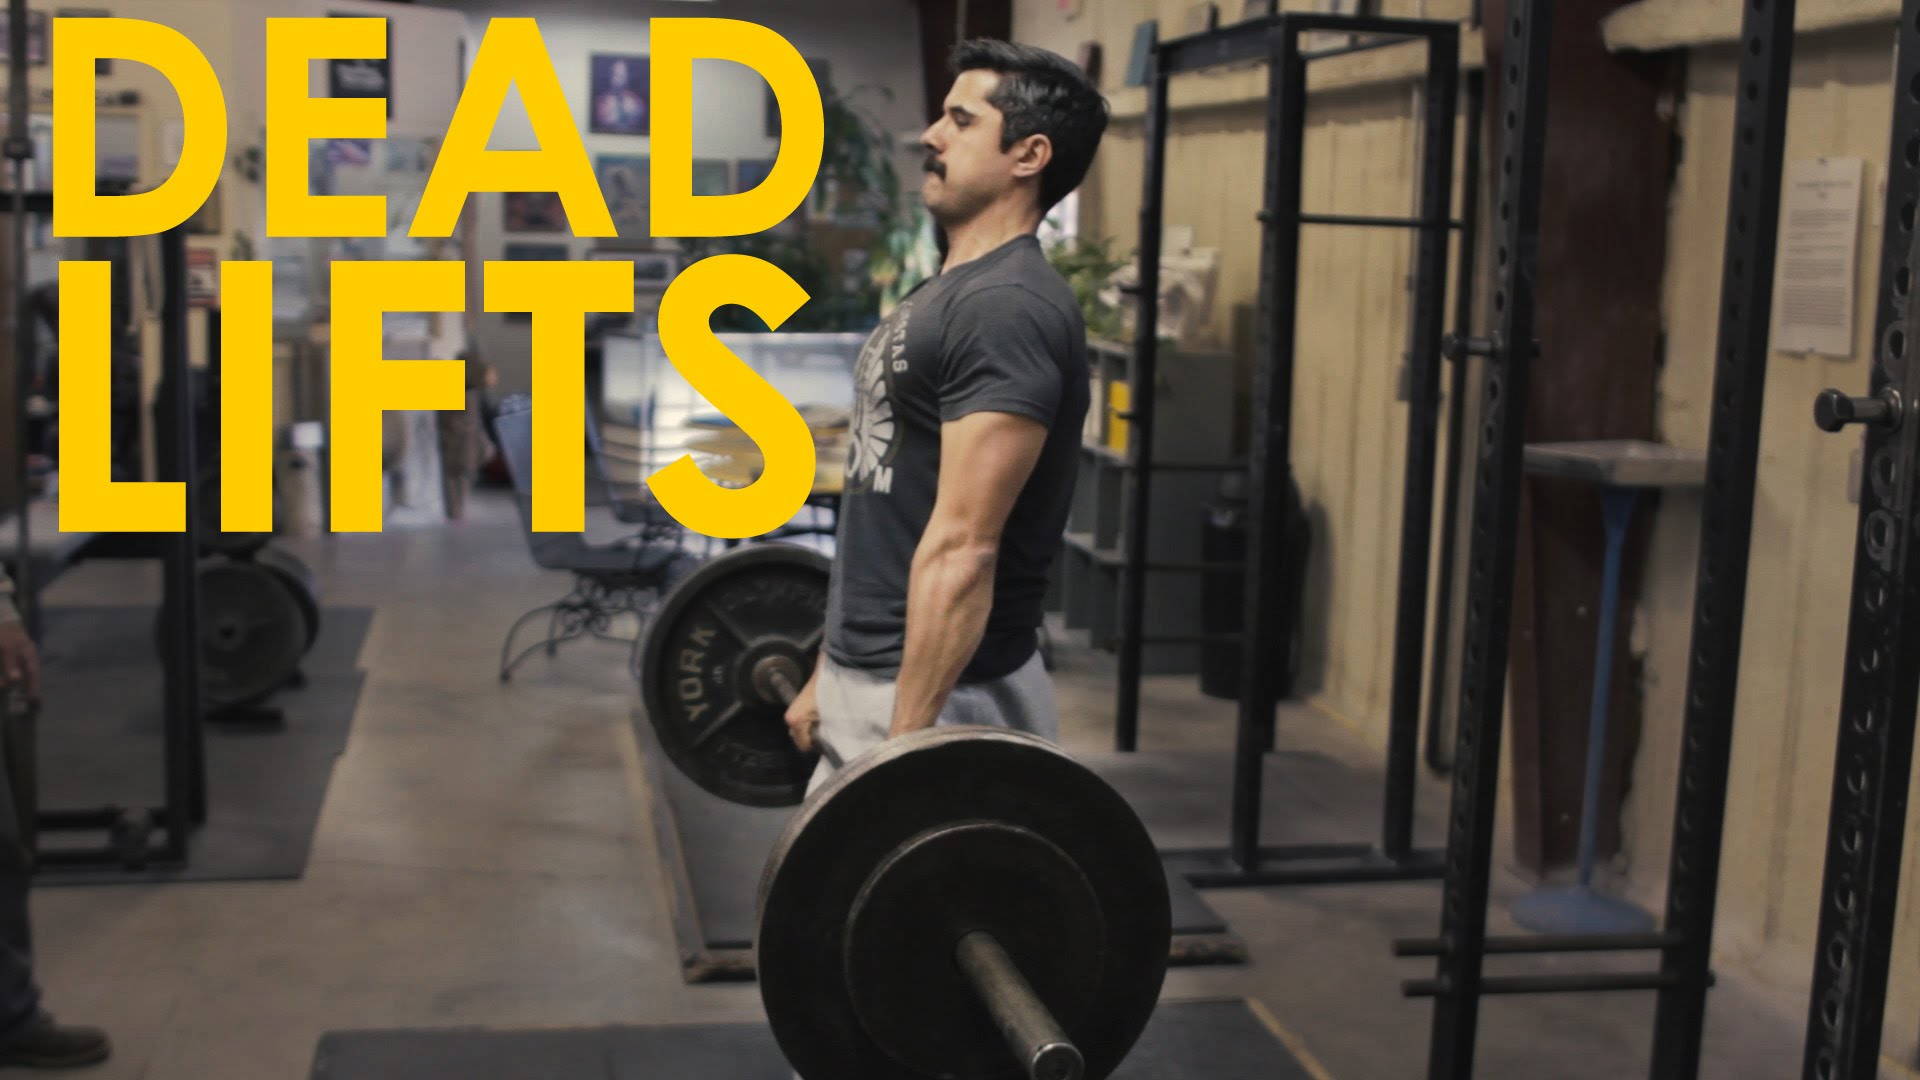 How to Do a Deadlift | The Art of Manliness